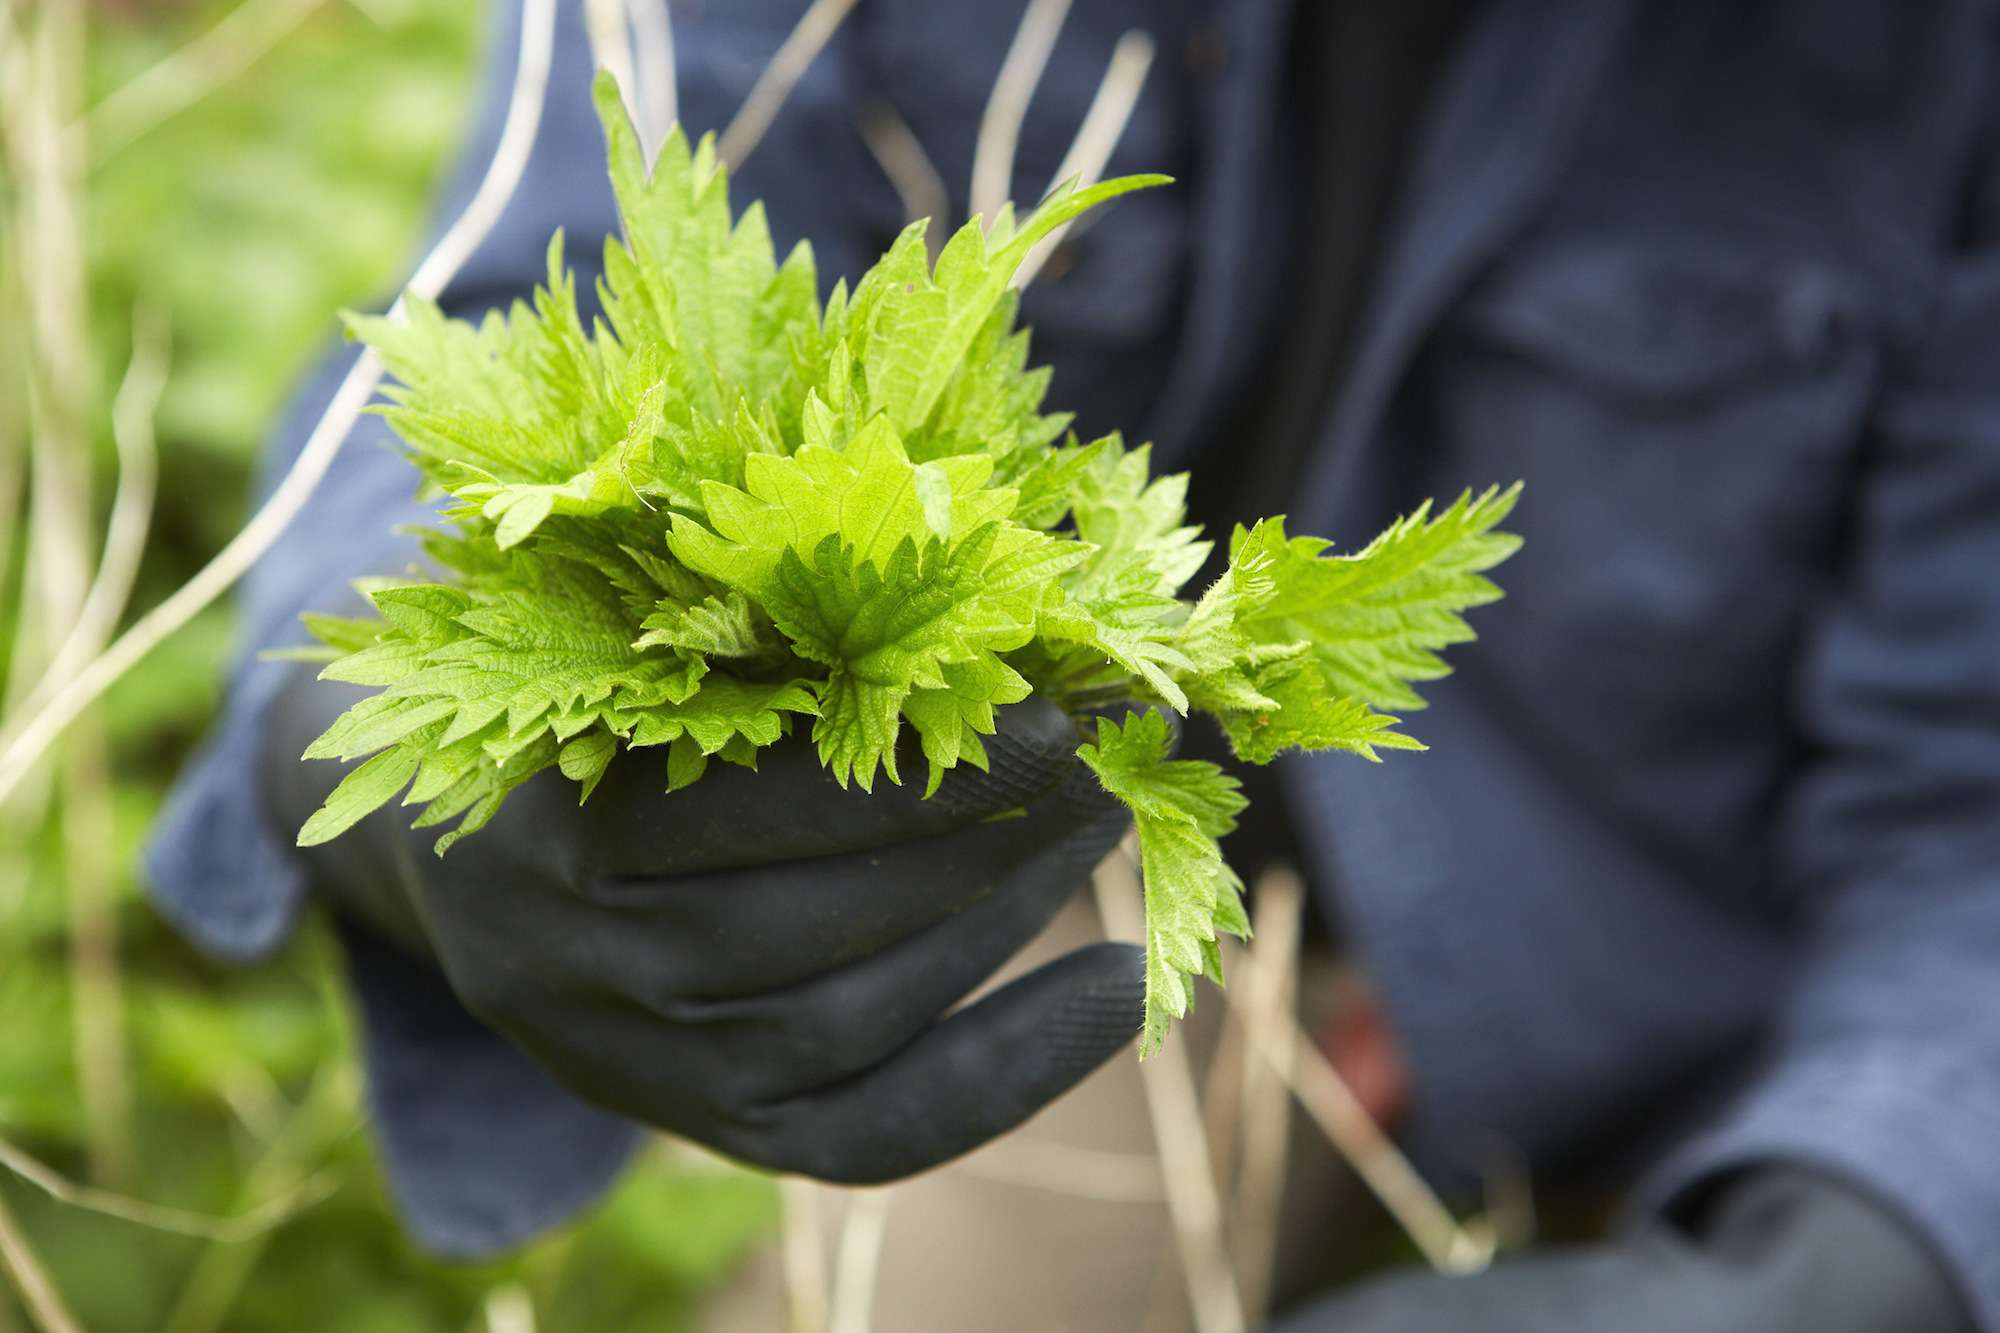 A man holding a fresh handful of stinging nettles.